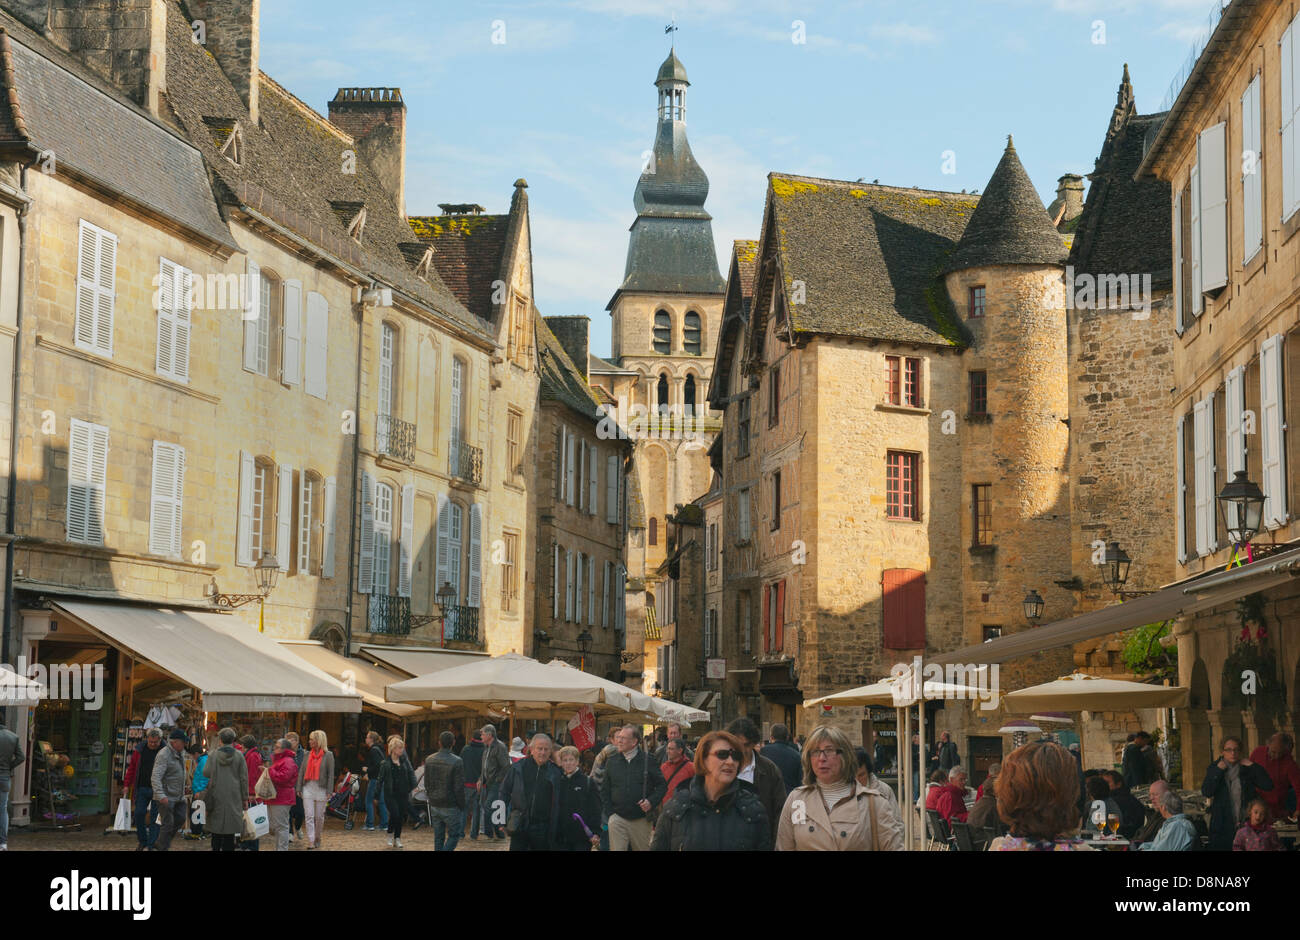 Market Square, Sarlat-la-Canéda, Dordogne FRANCE, well-preserved medieval town - Stock Image